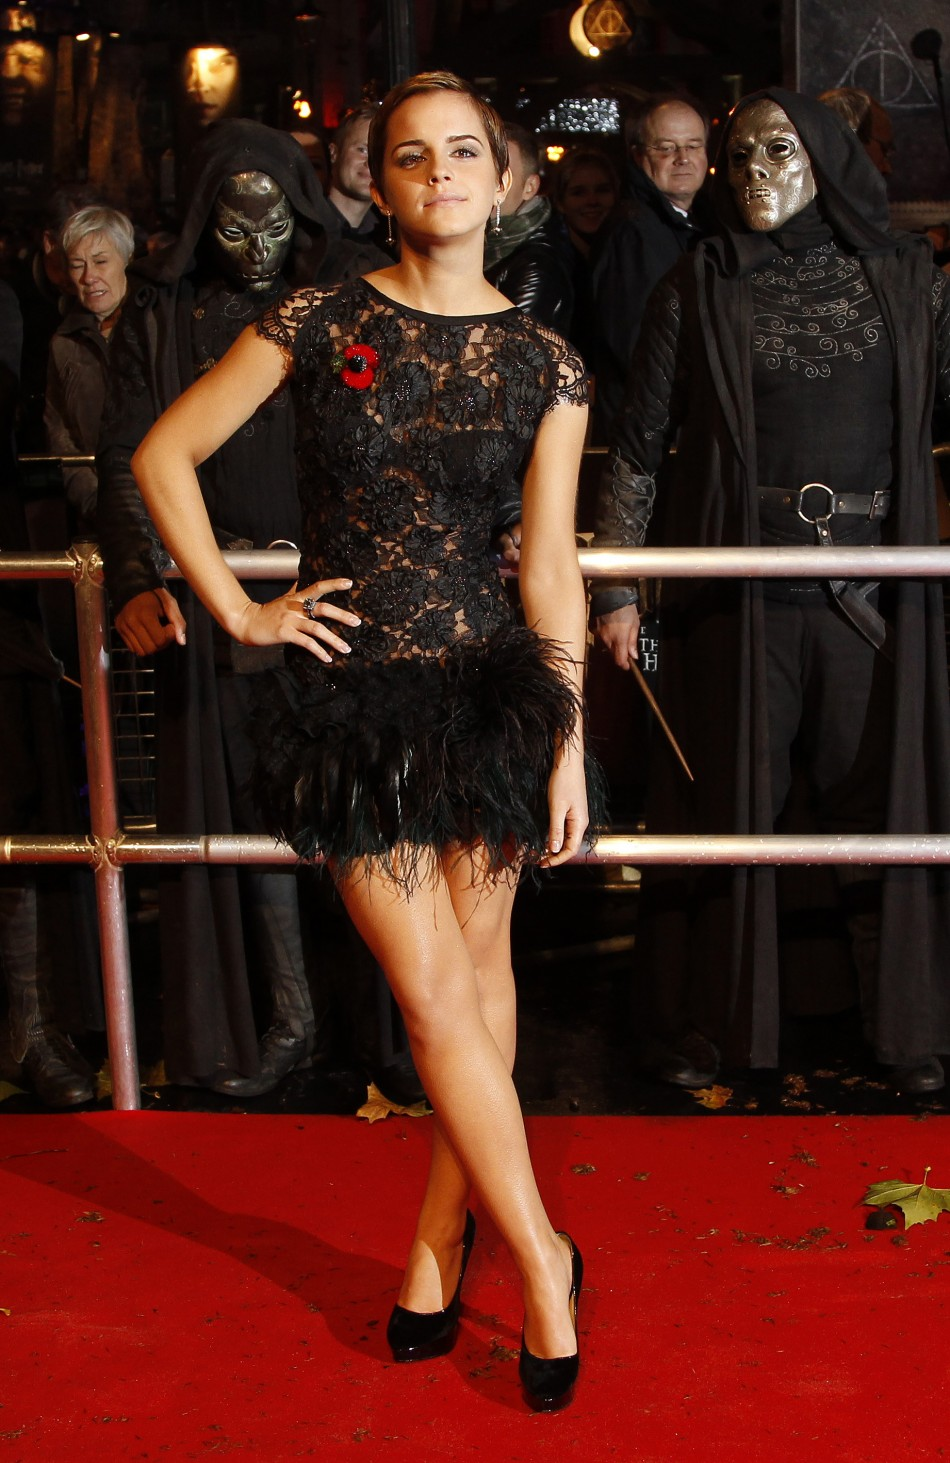 Britains Watson poses as she arrives for the world film premiere of quotHarry Potter and the Deathly Hallows Part 1quot in London 2010